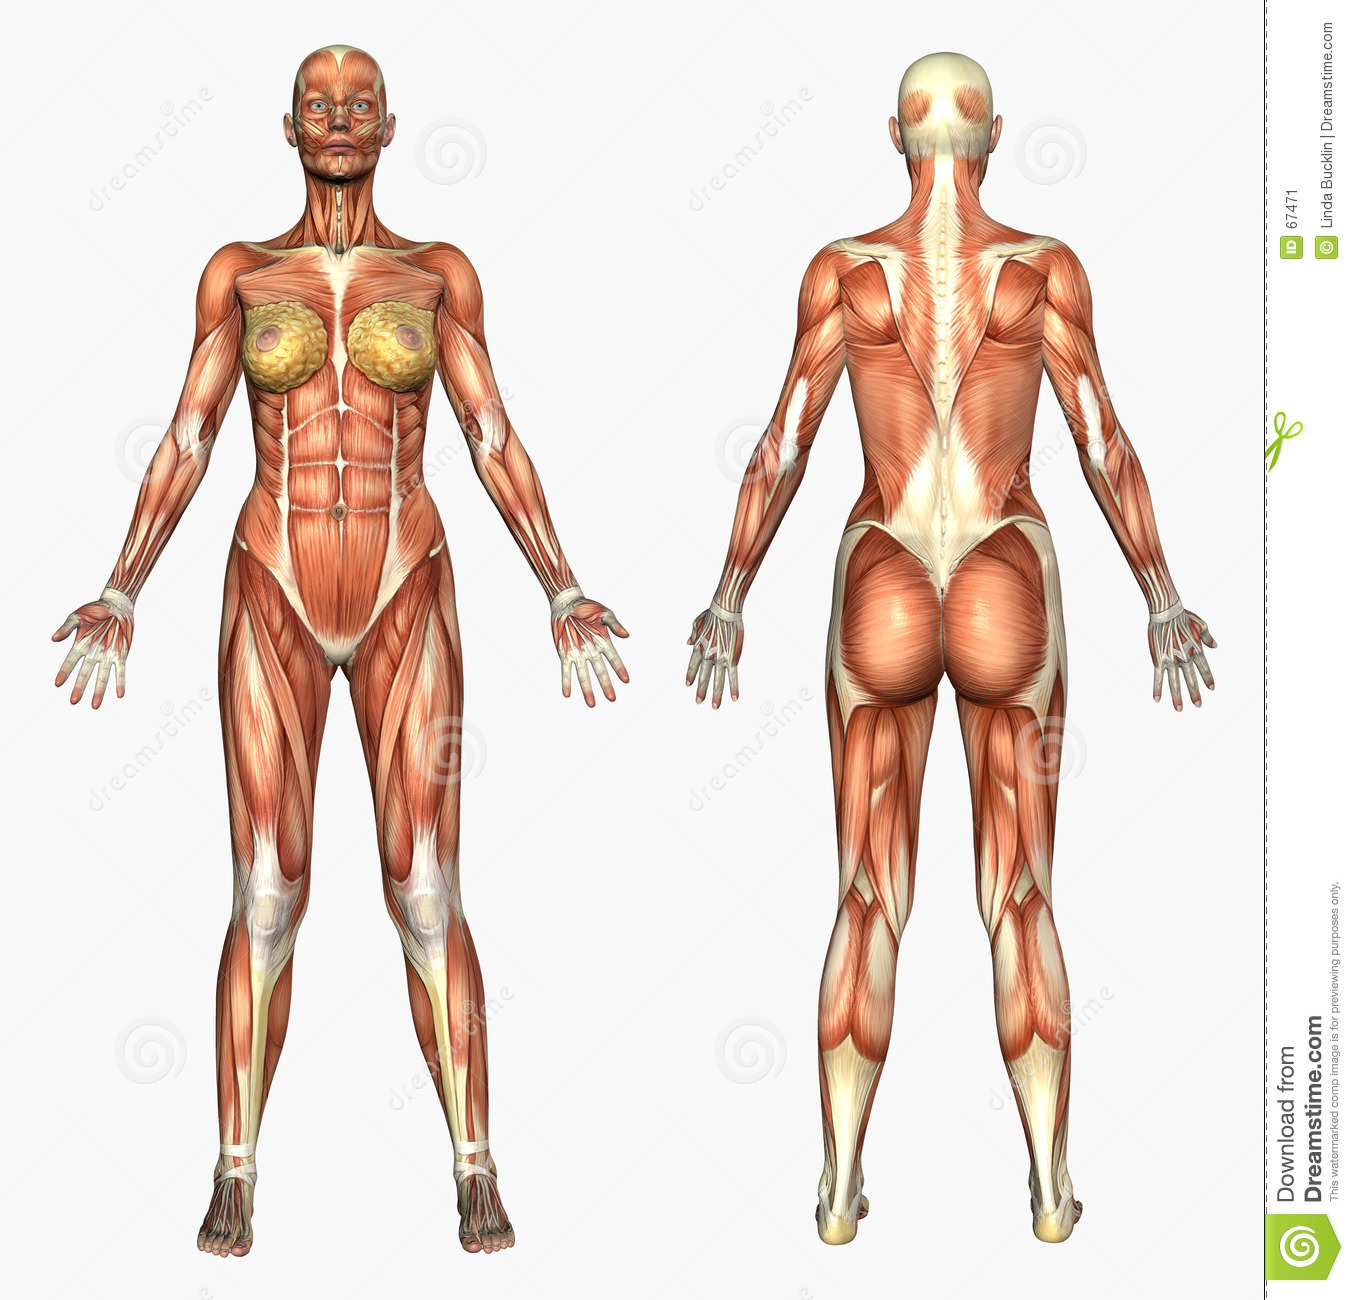 gross anatomy of muscular system gallery - learn human anatomy image, Muscles